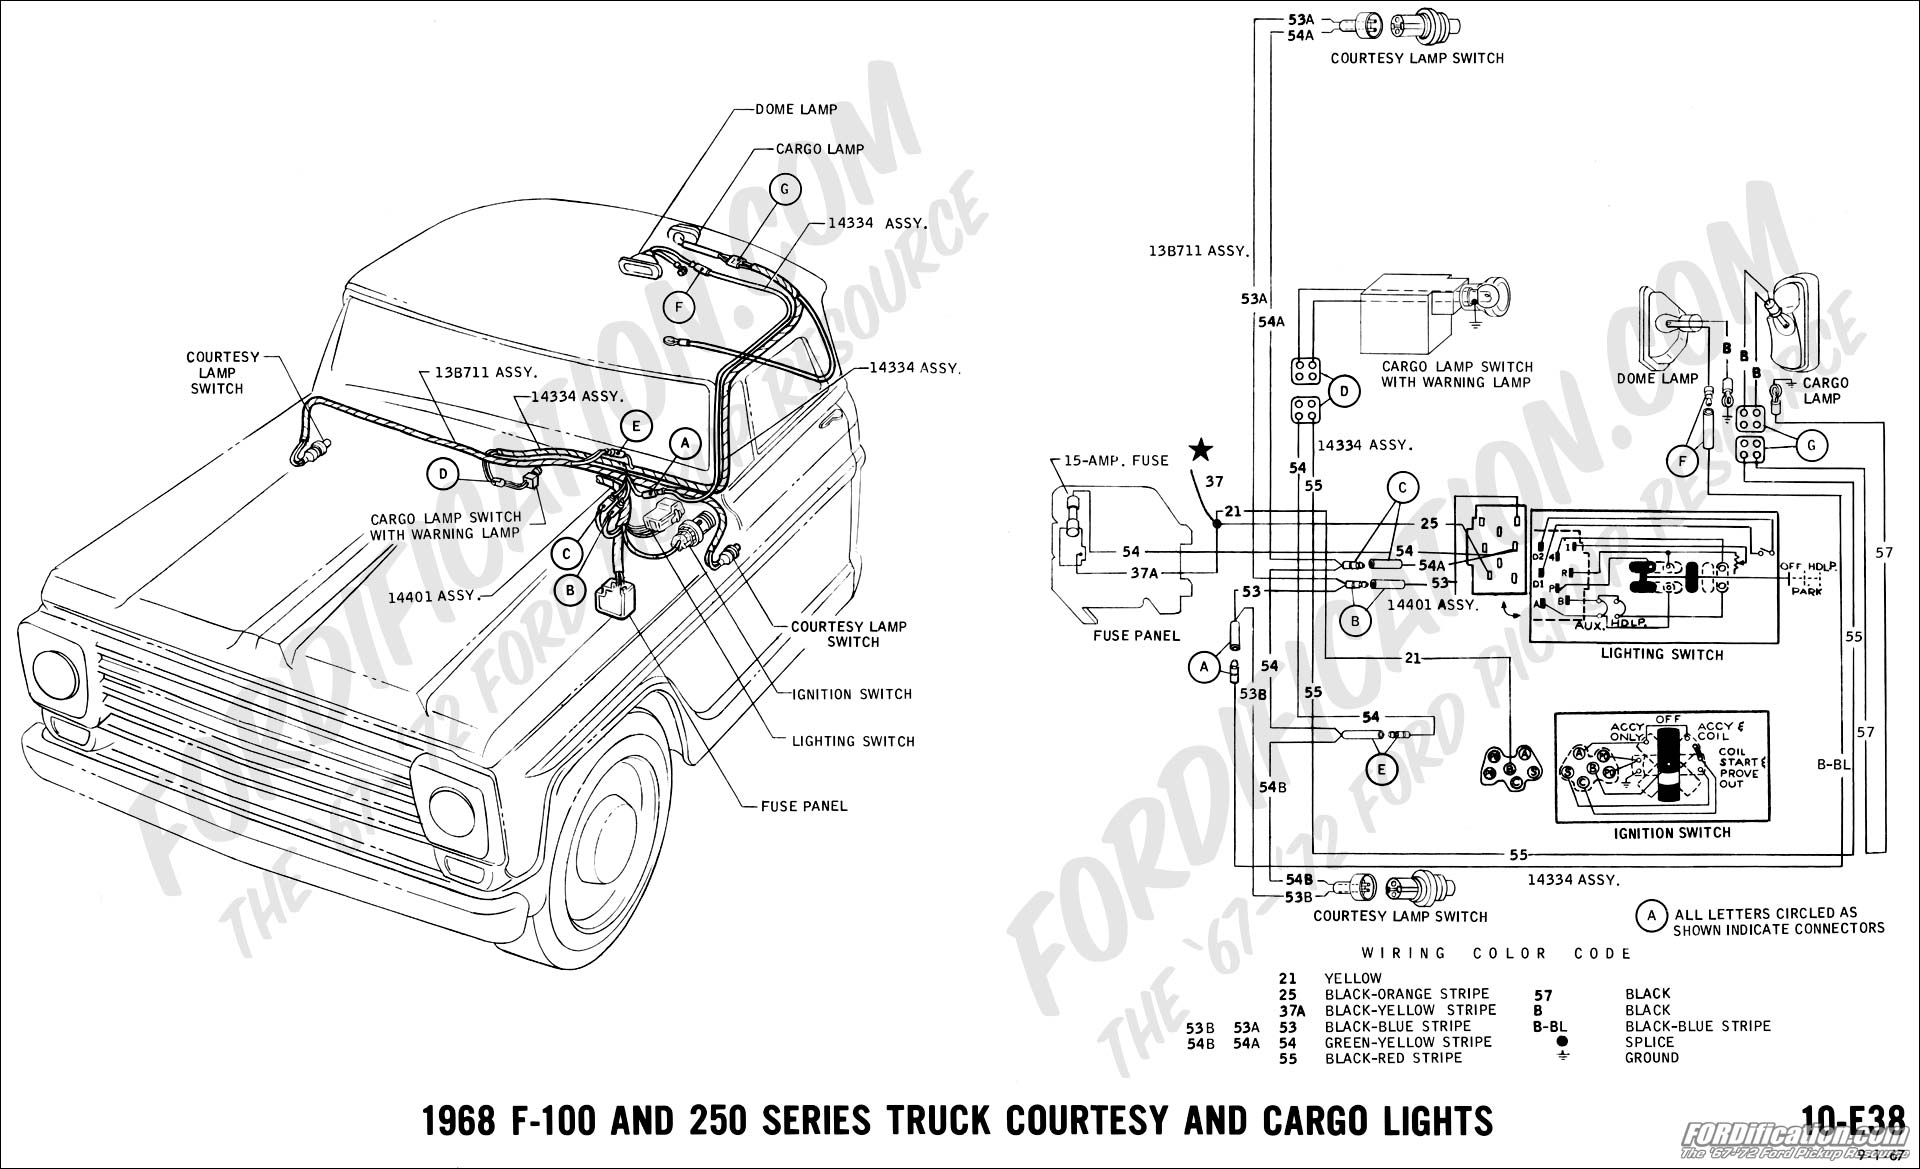 1968 Ford F 250 Engine Wiring Diagram - Wiring Diagram schematics Lincoln Sa Wiring Diagram on lincoln electric wiring diagrams, sunbeam mixmaster diagram, lincoln 250 diesel welder wiring diagram remote,